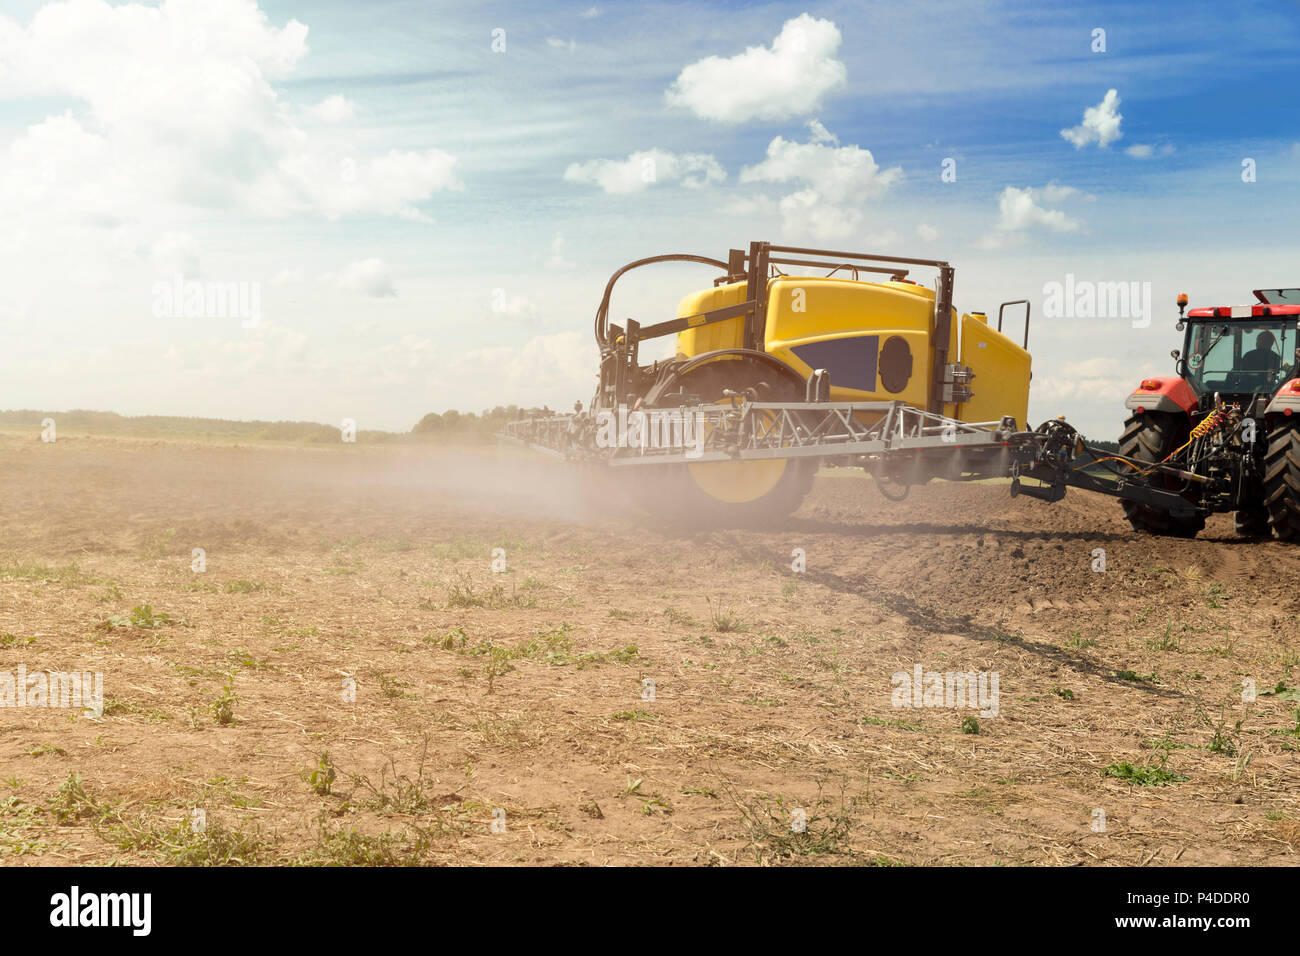 Tractor with sprayer trailer beside the cereal field. Heavy machinery for agriculture - Stock Image